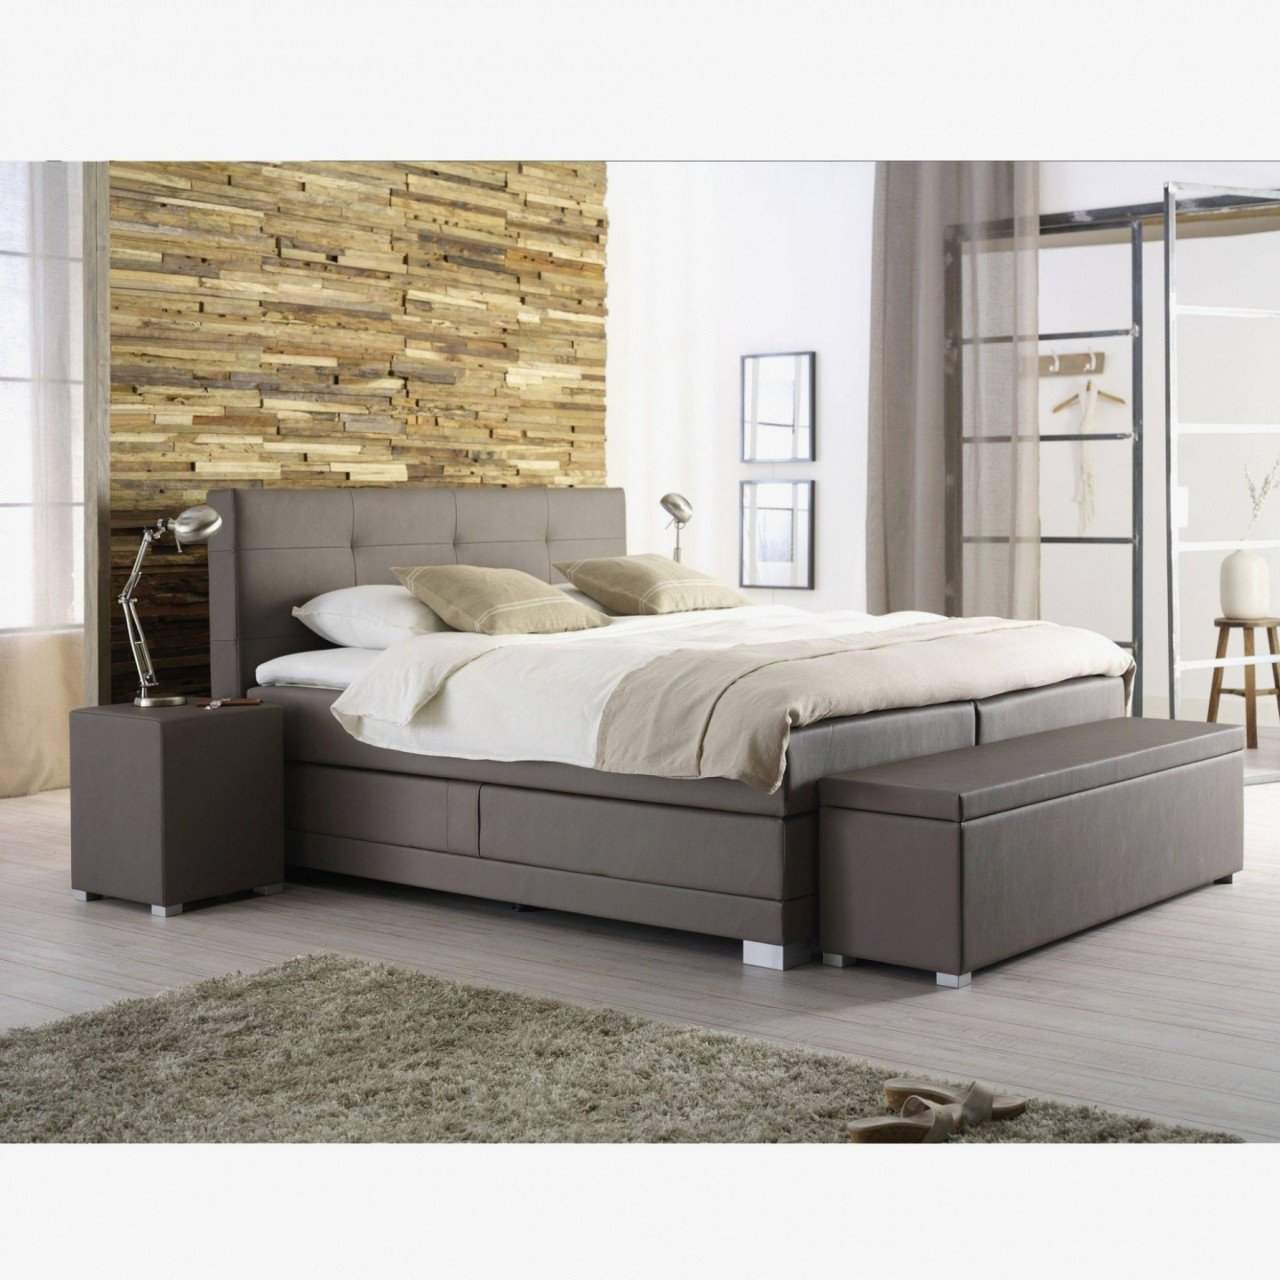 Queen Bedroom Set White New Bed with Drawers Under — Procura Home Blog